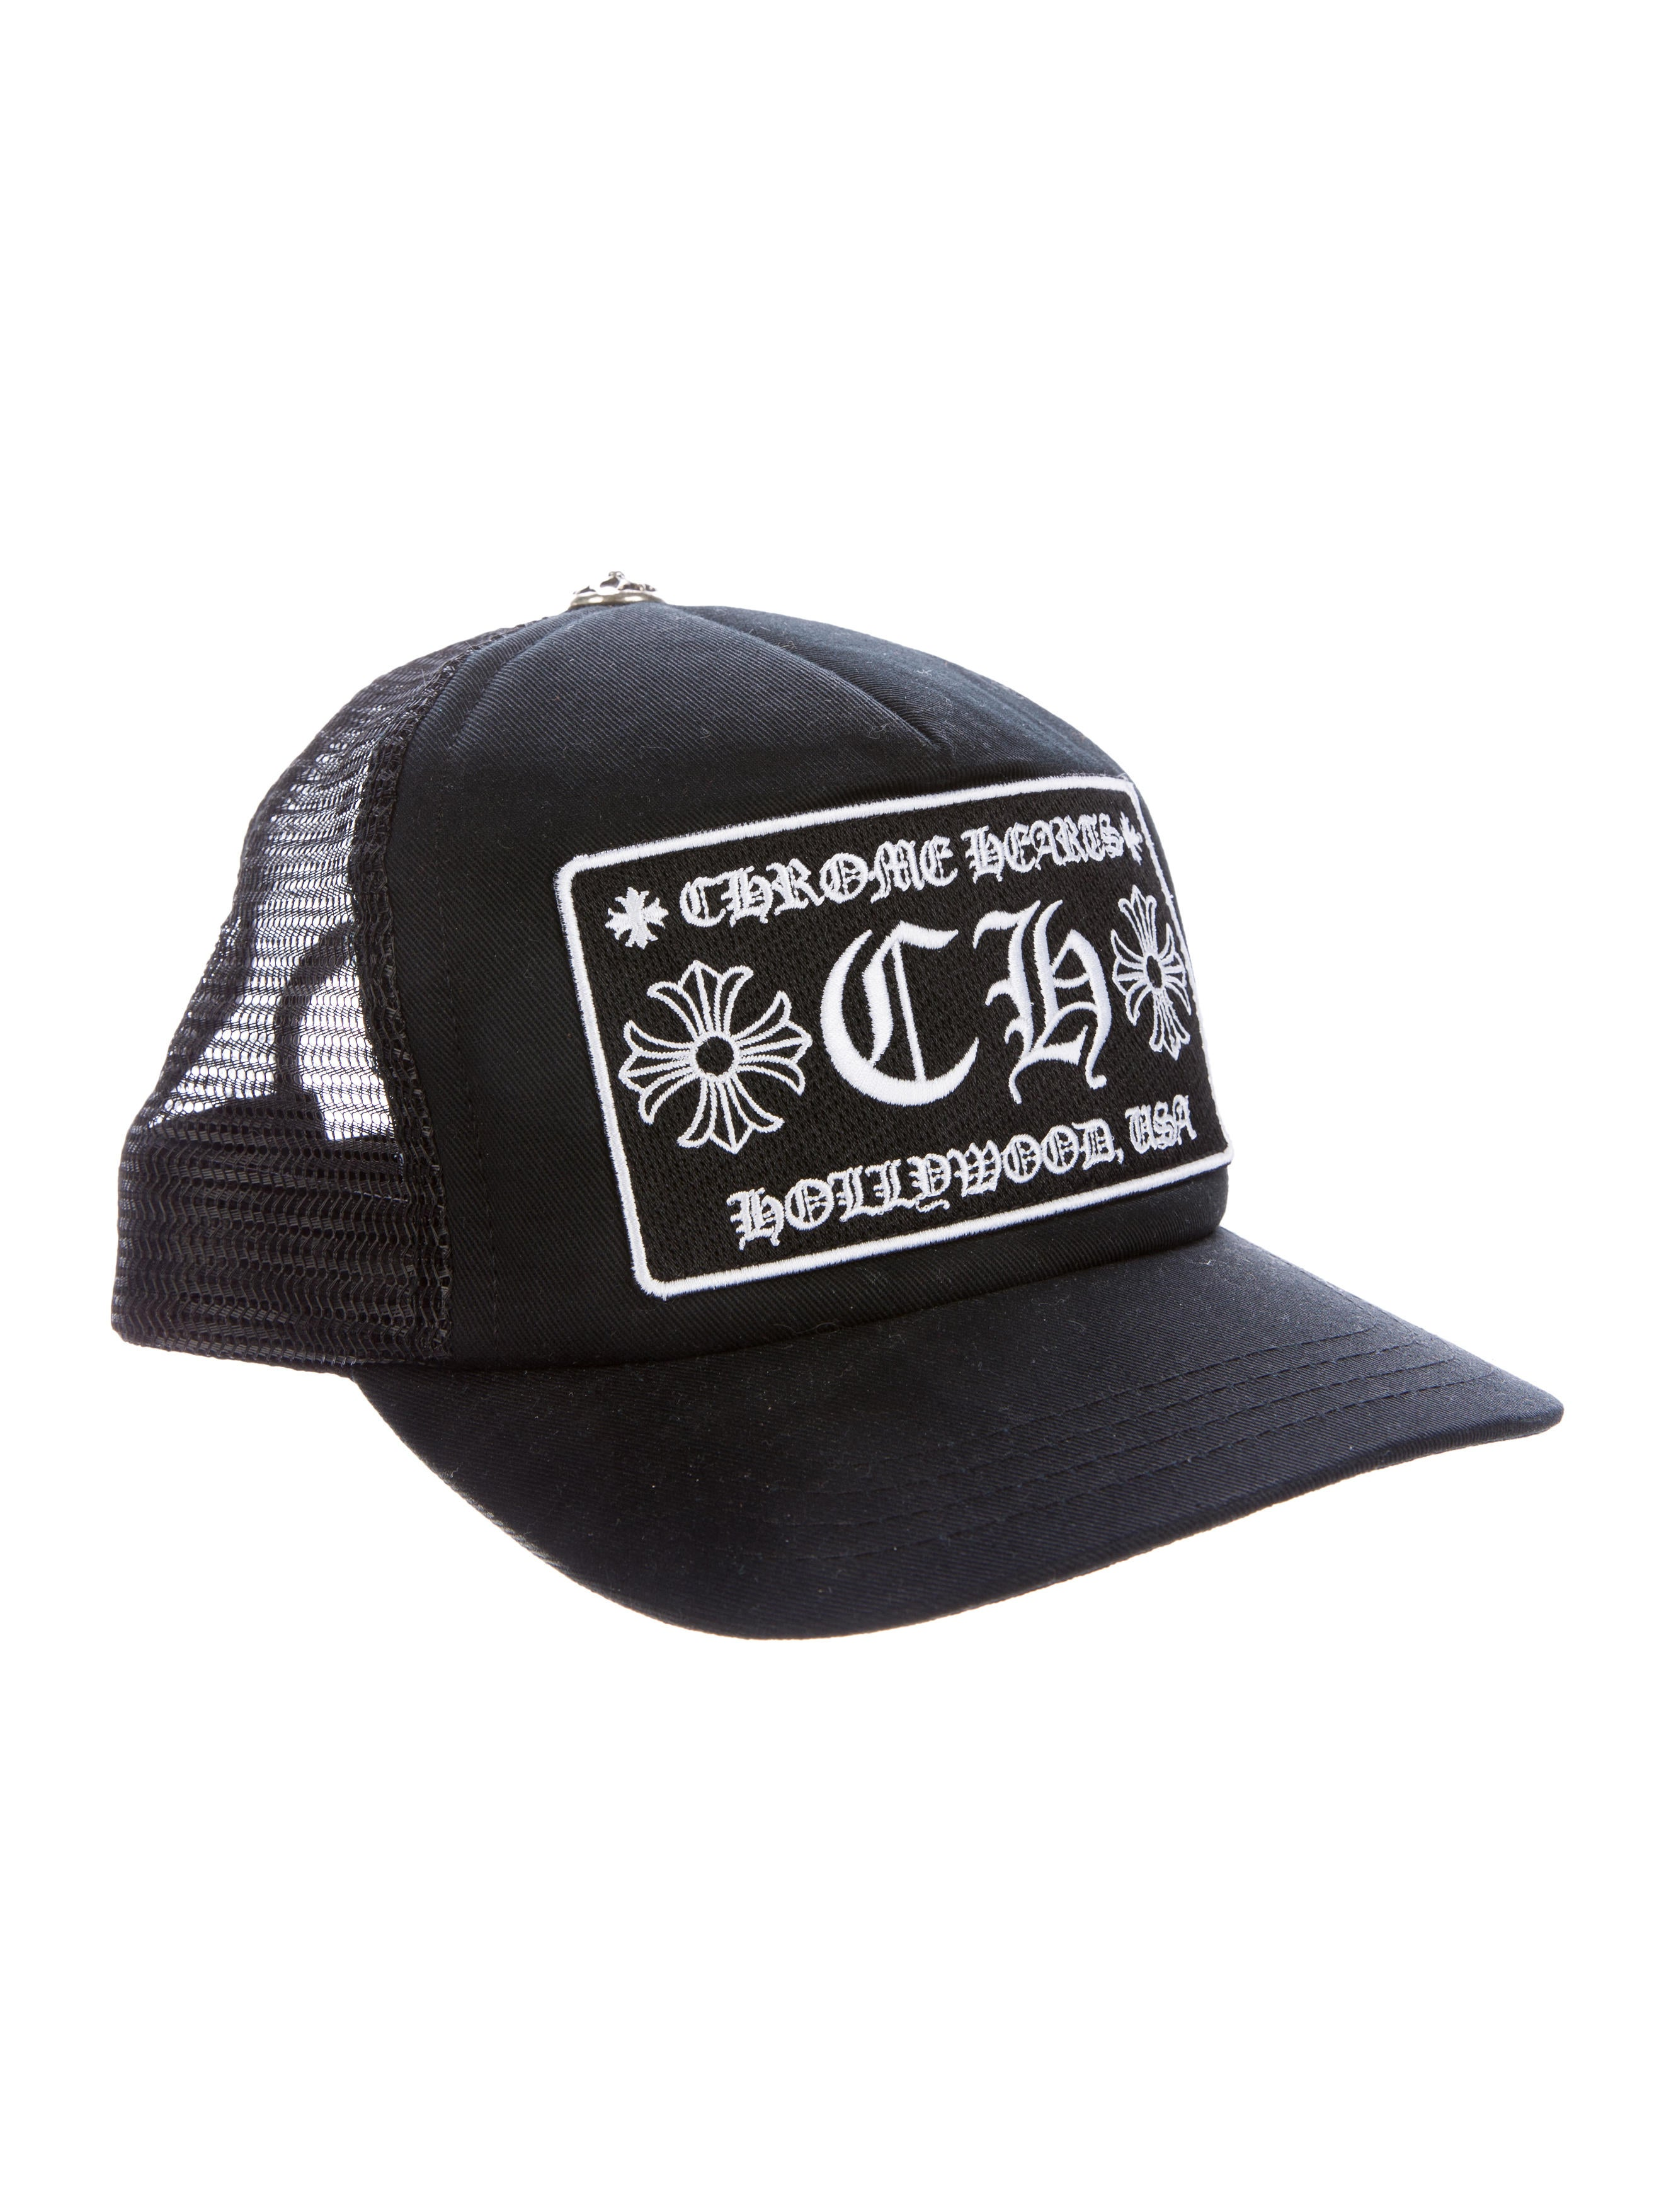 a2ad595648556 Chrome Hearts Hollywood Trucker Hat - Accessories - CHH21860